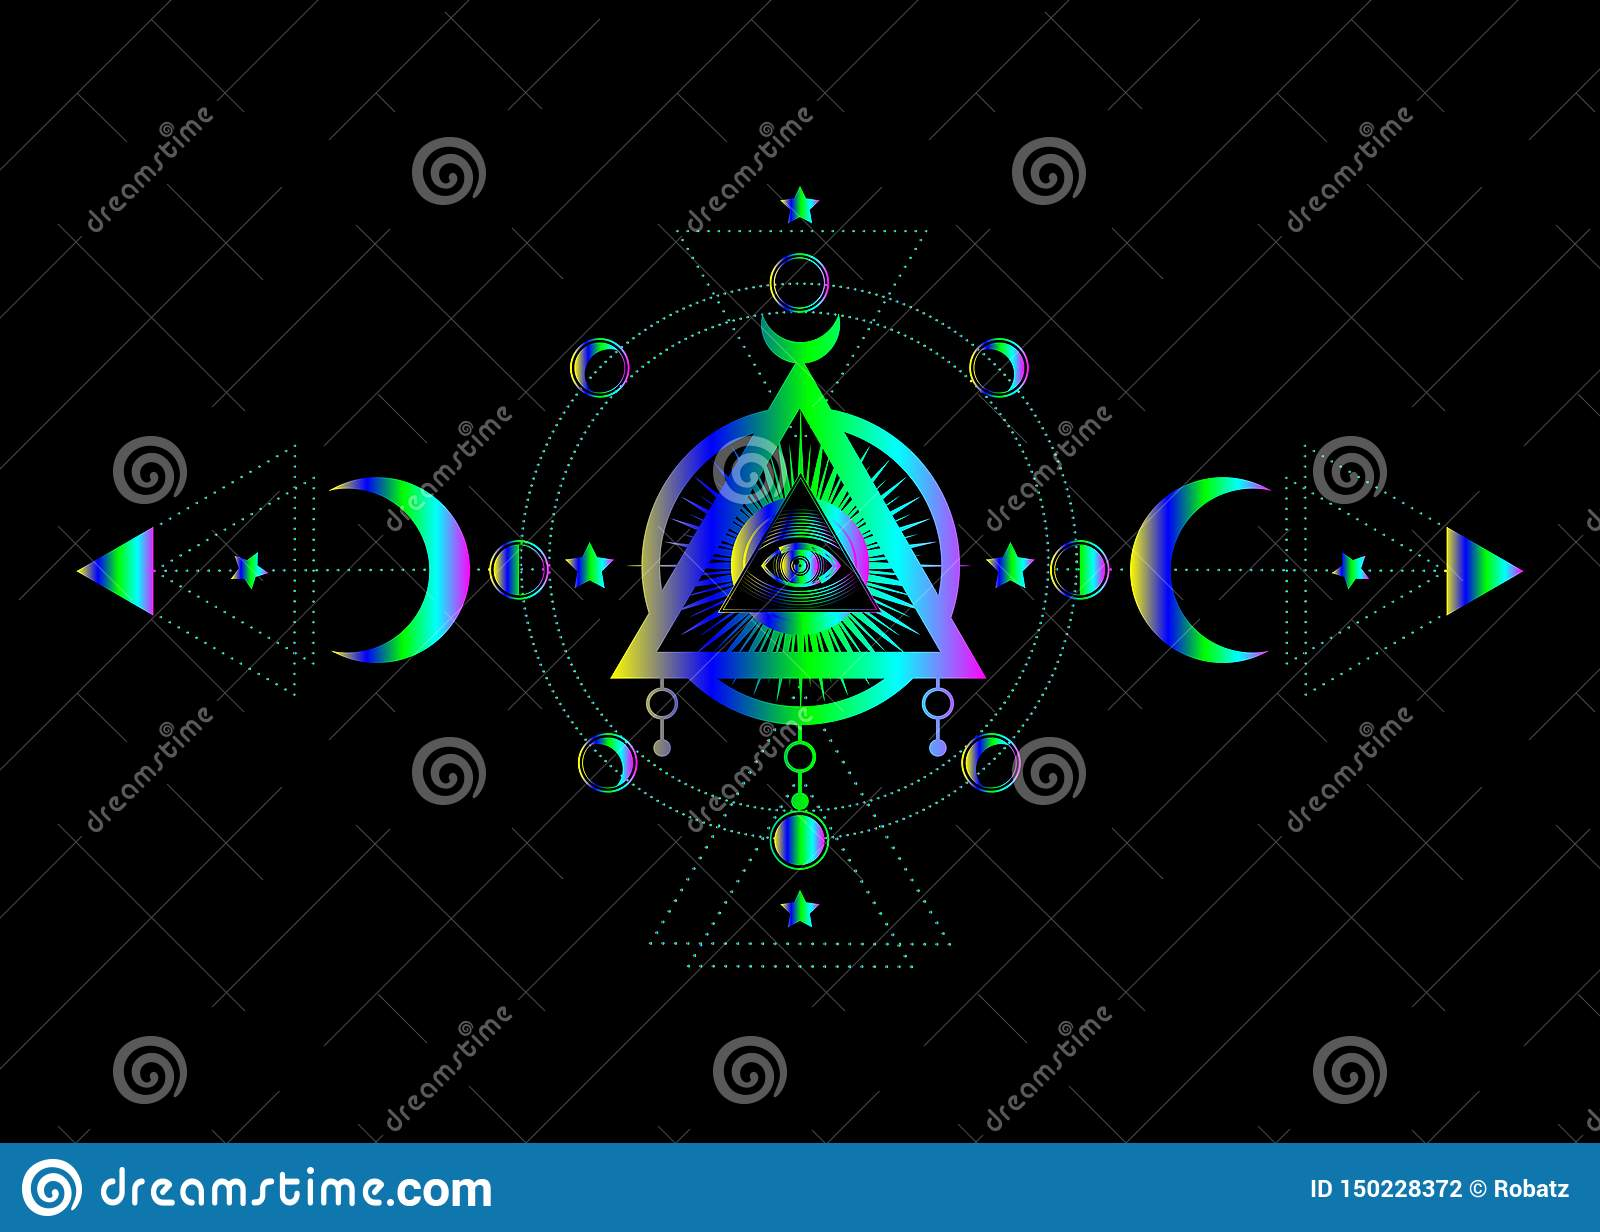 Eye Of Providence  Masonic Symbol  All Seeing Eye Inside